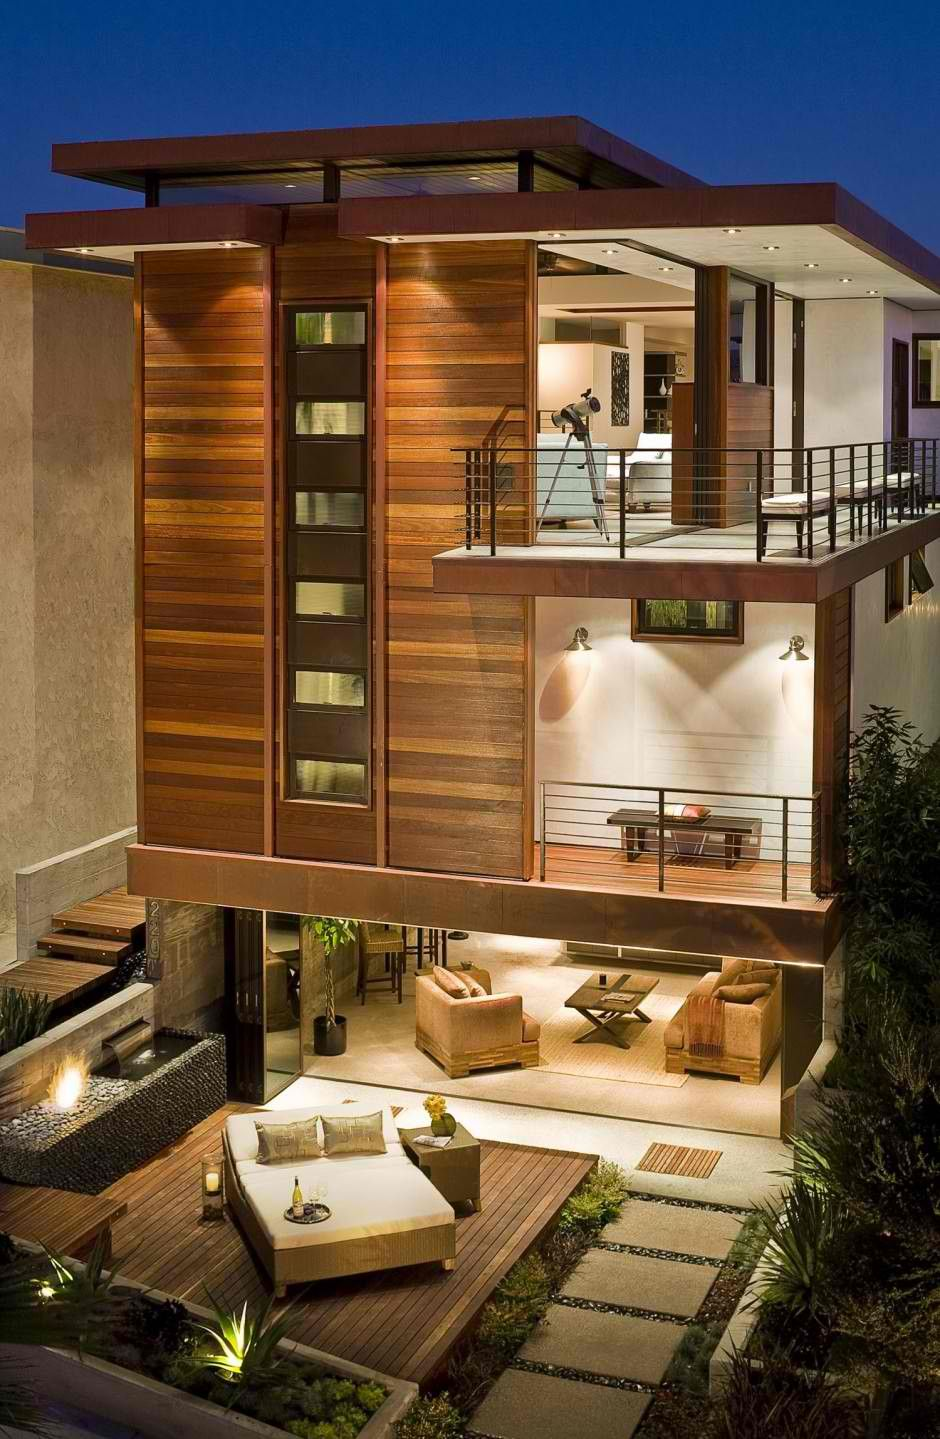 ^ 1000+ images about homes on Pinterest | Small modern house plans ...